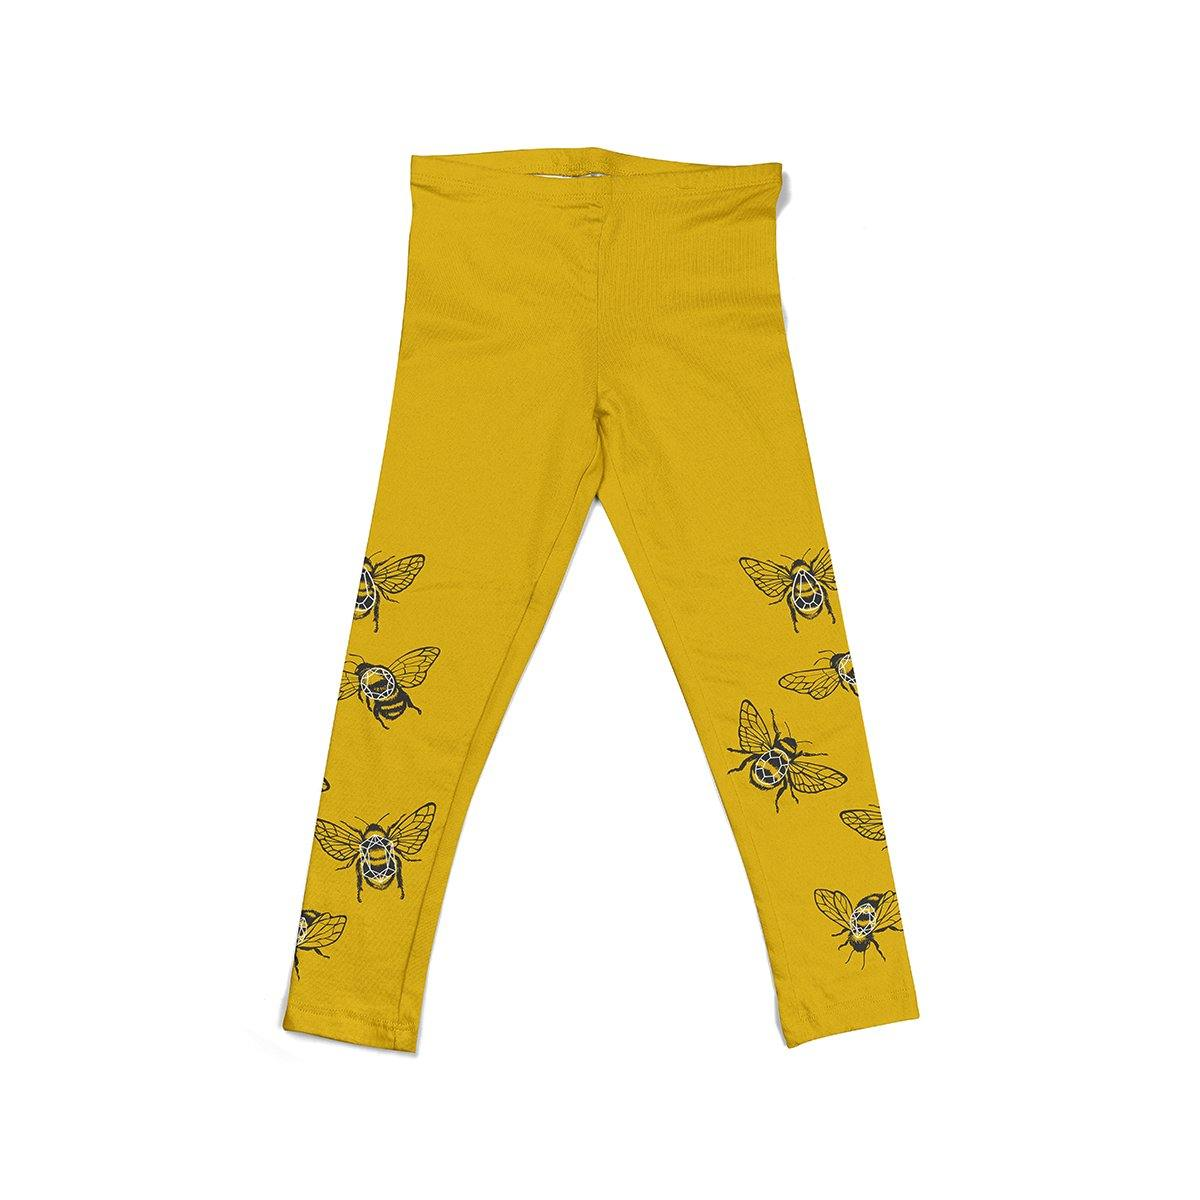 Yellow KIDS leggings Crystal bees - ZIB*